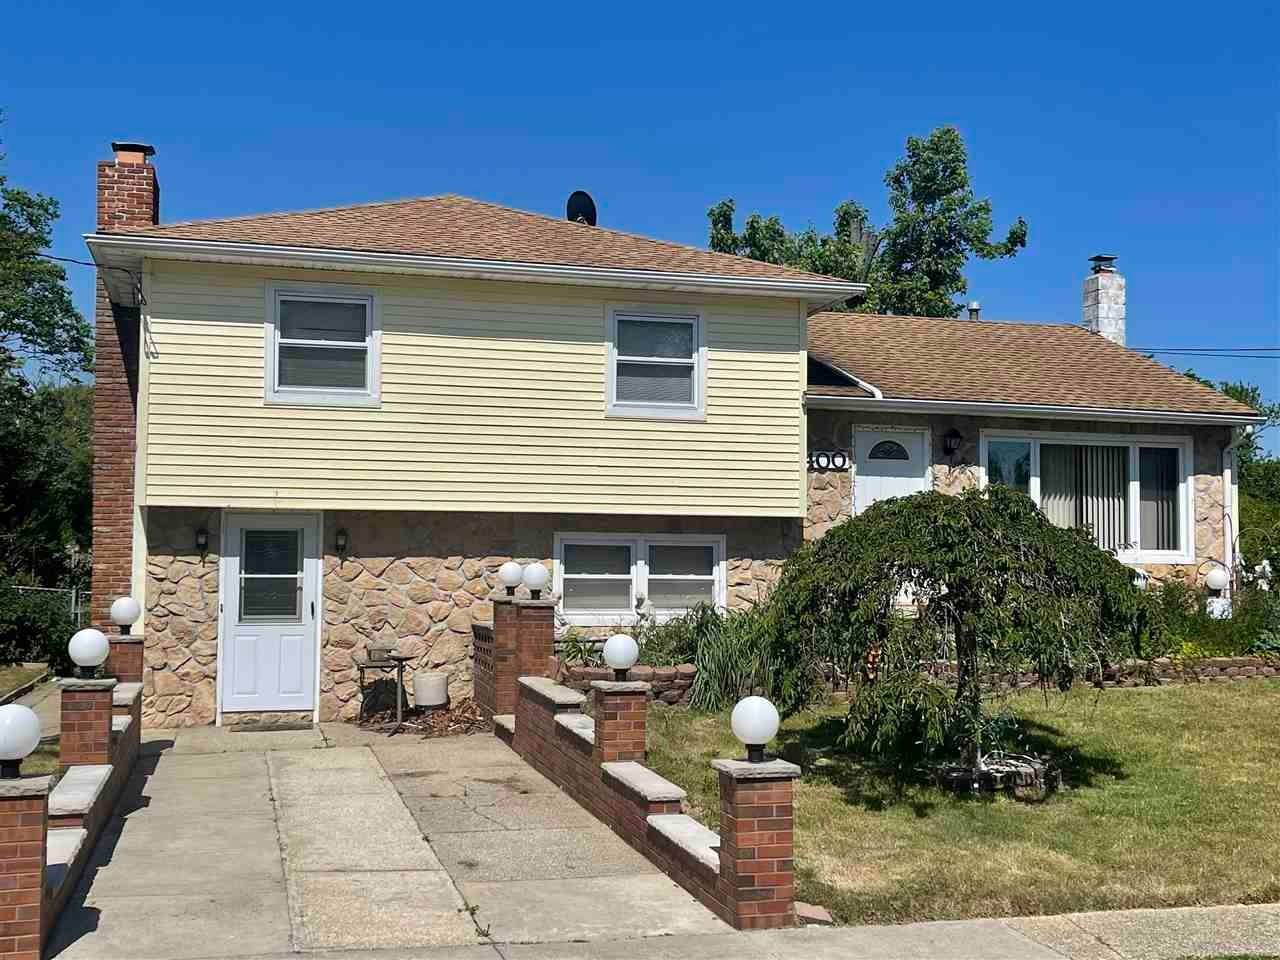 Single Family Homes for Sale at 400 Winslow Avenue North Cape May, New Jersey 08204 United States